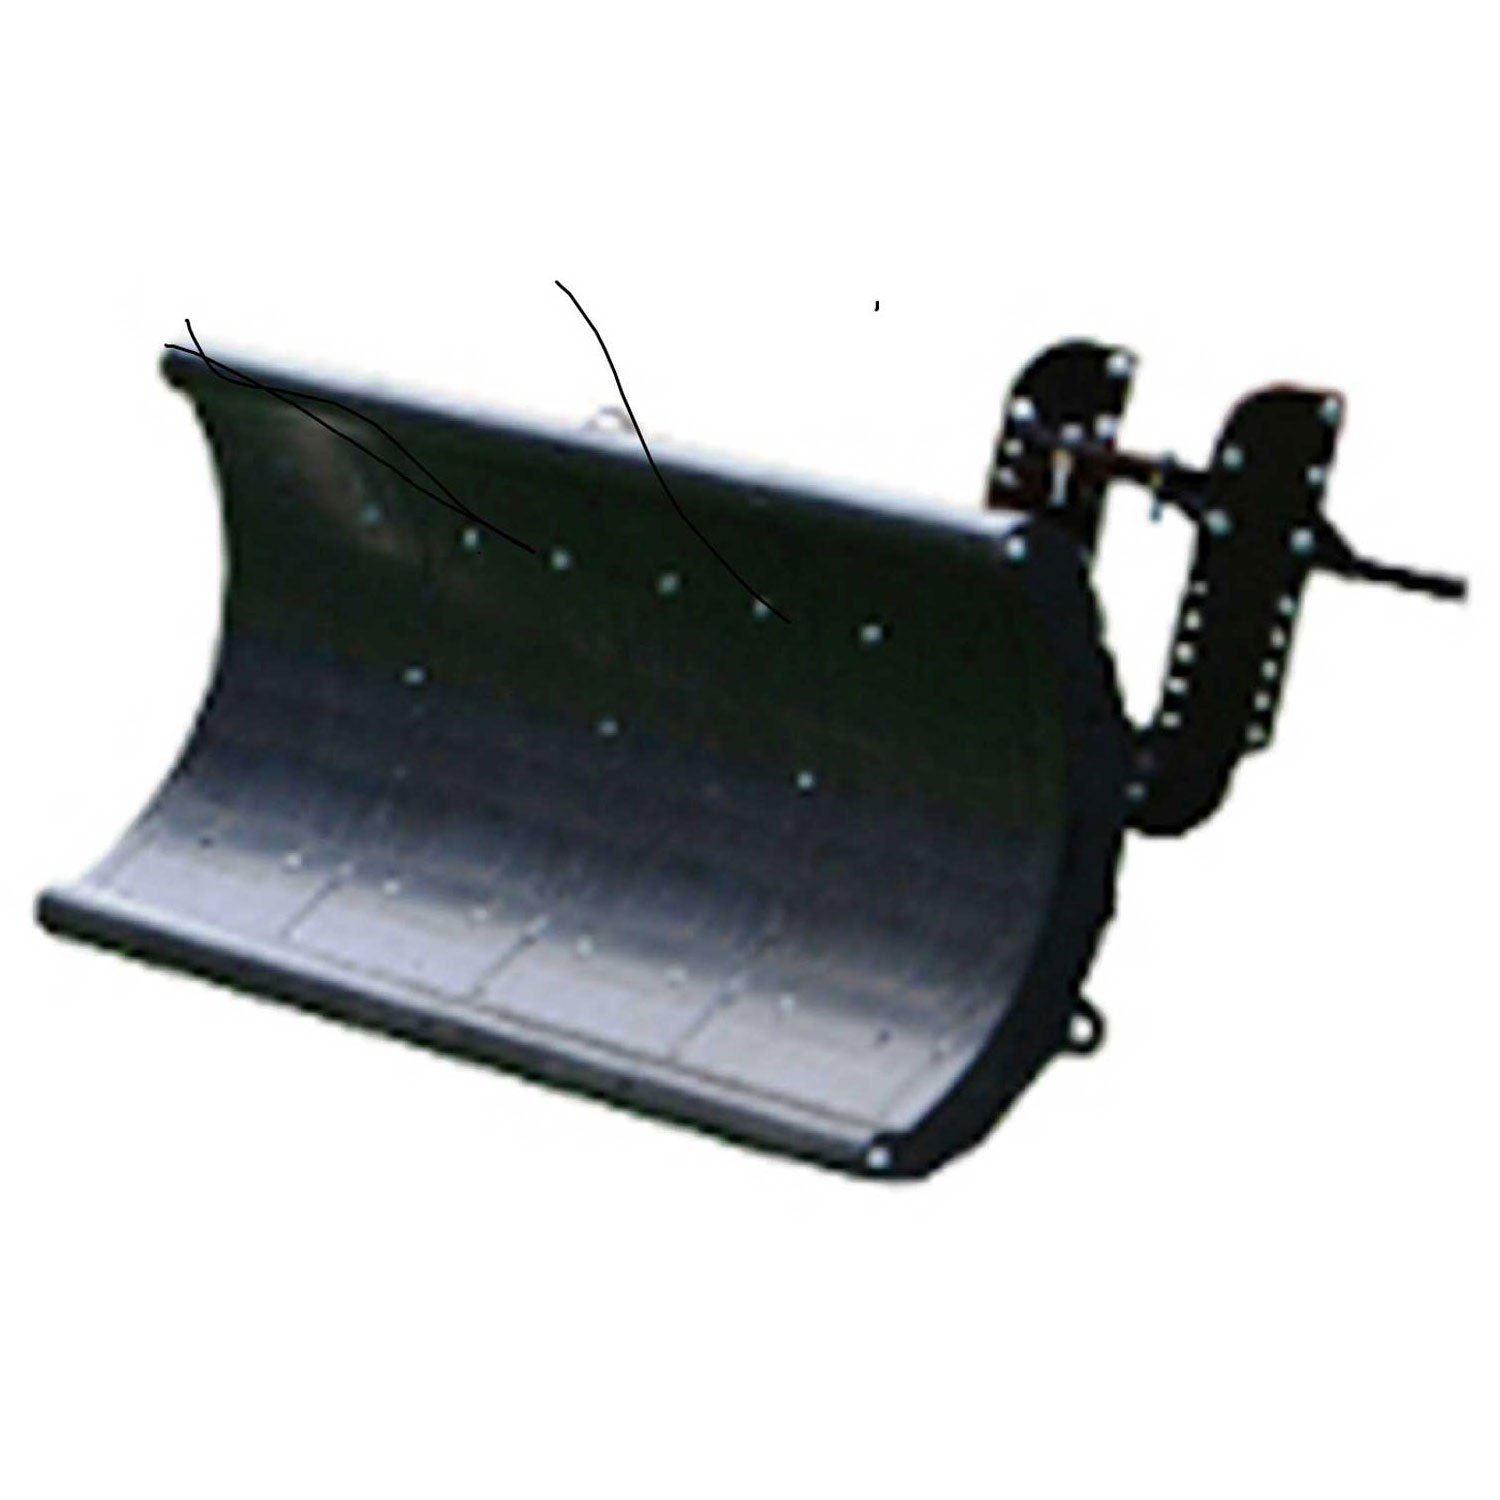 Nordic Auto Plow NAP-GCL4 Lightweight Rounded Edge 64'' Snow Plow: Lifted Frame Club Car Golf Carts by Nordic Auto Plow LLC